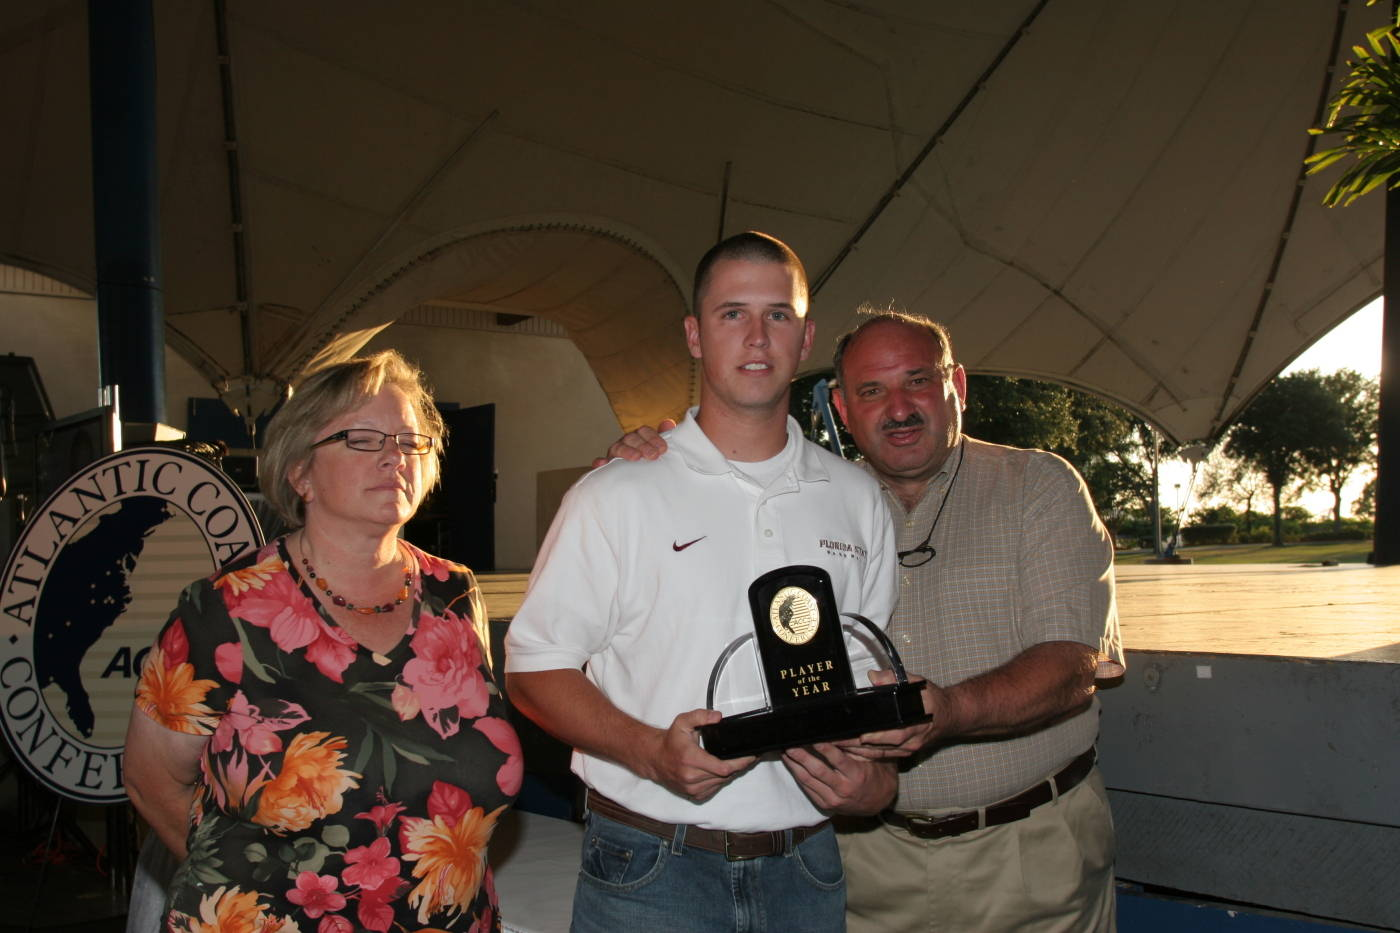 Buster Posey is honored as the ACC Player of the Year in 2008.